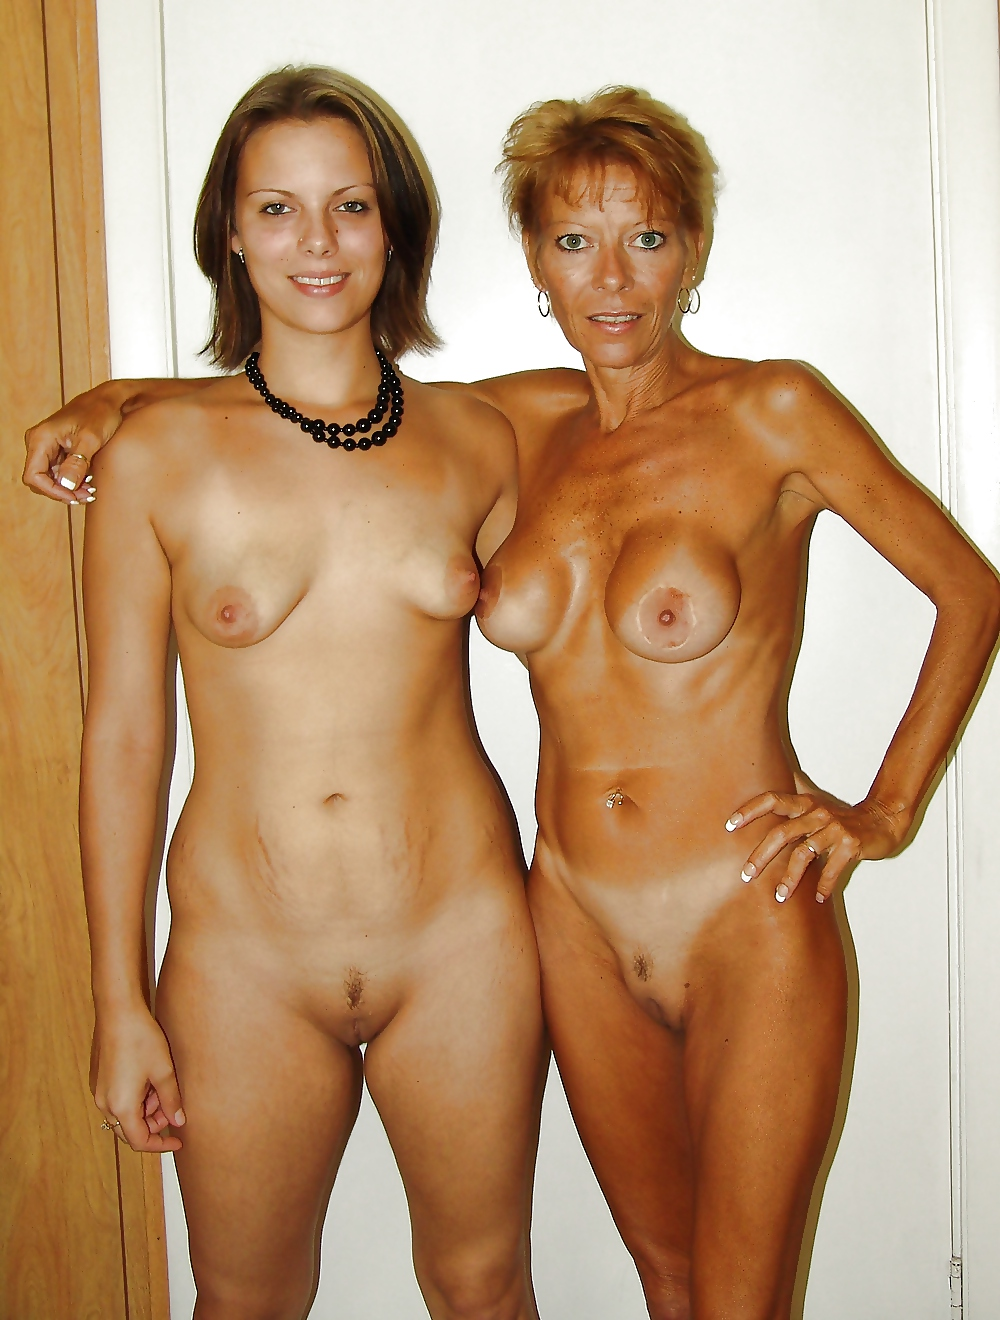 Hartly with naked dream moms girl